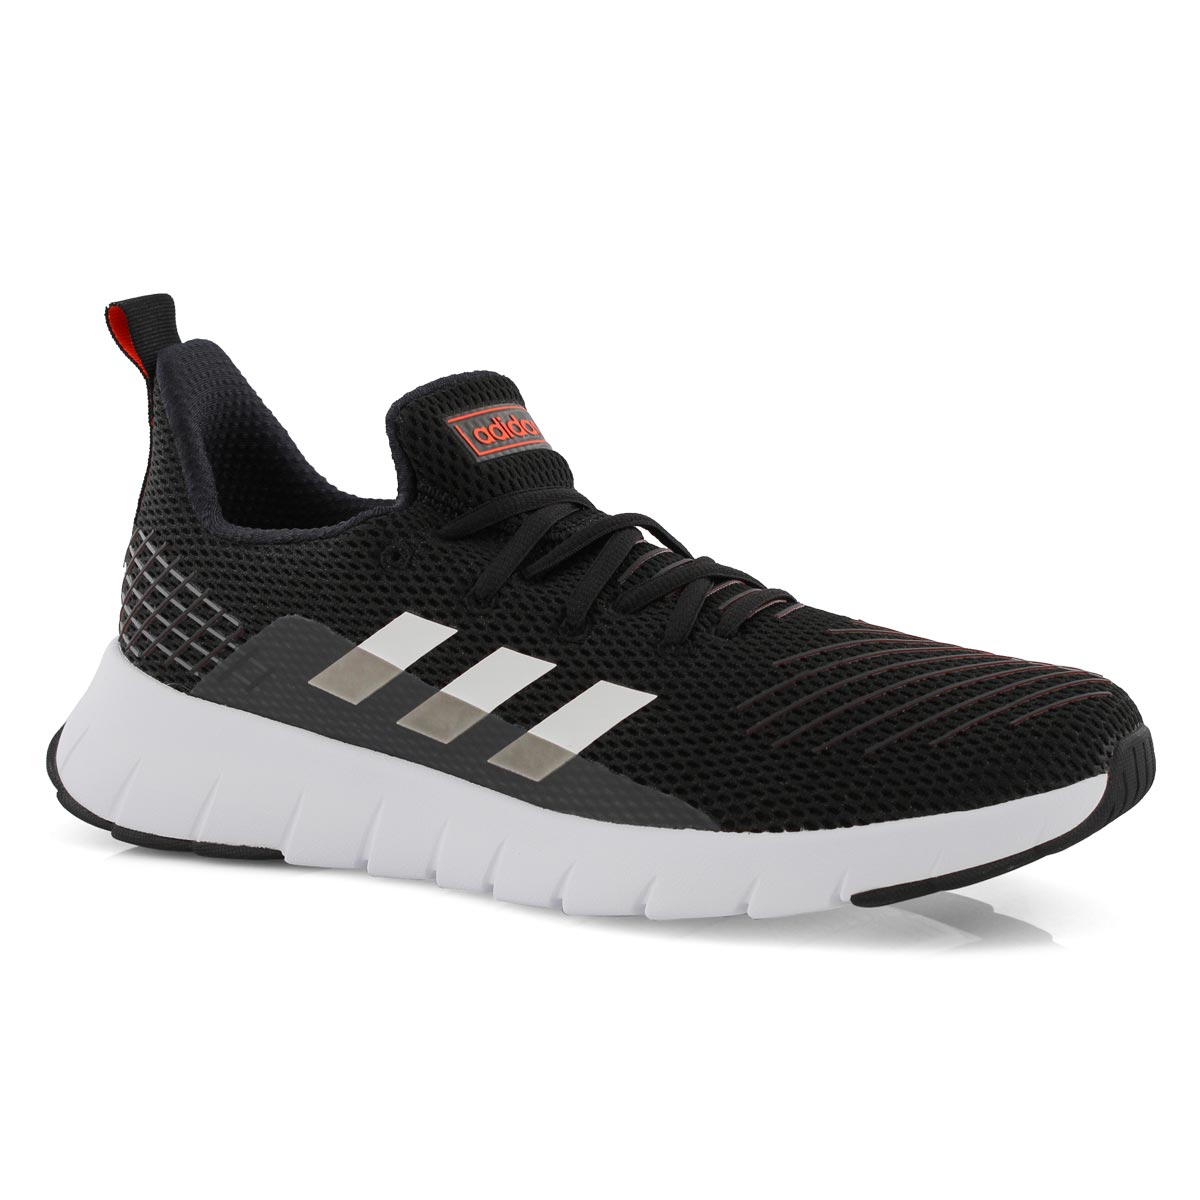 Mns Asweego Run blk/wht running shoe